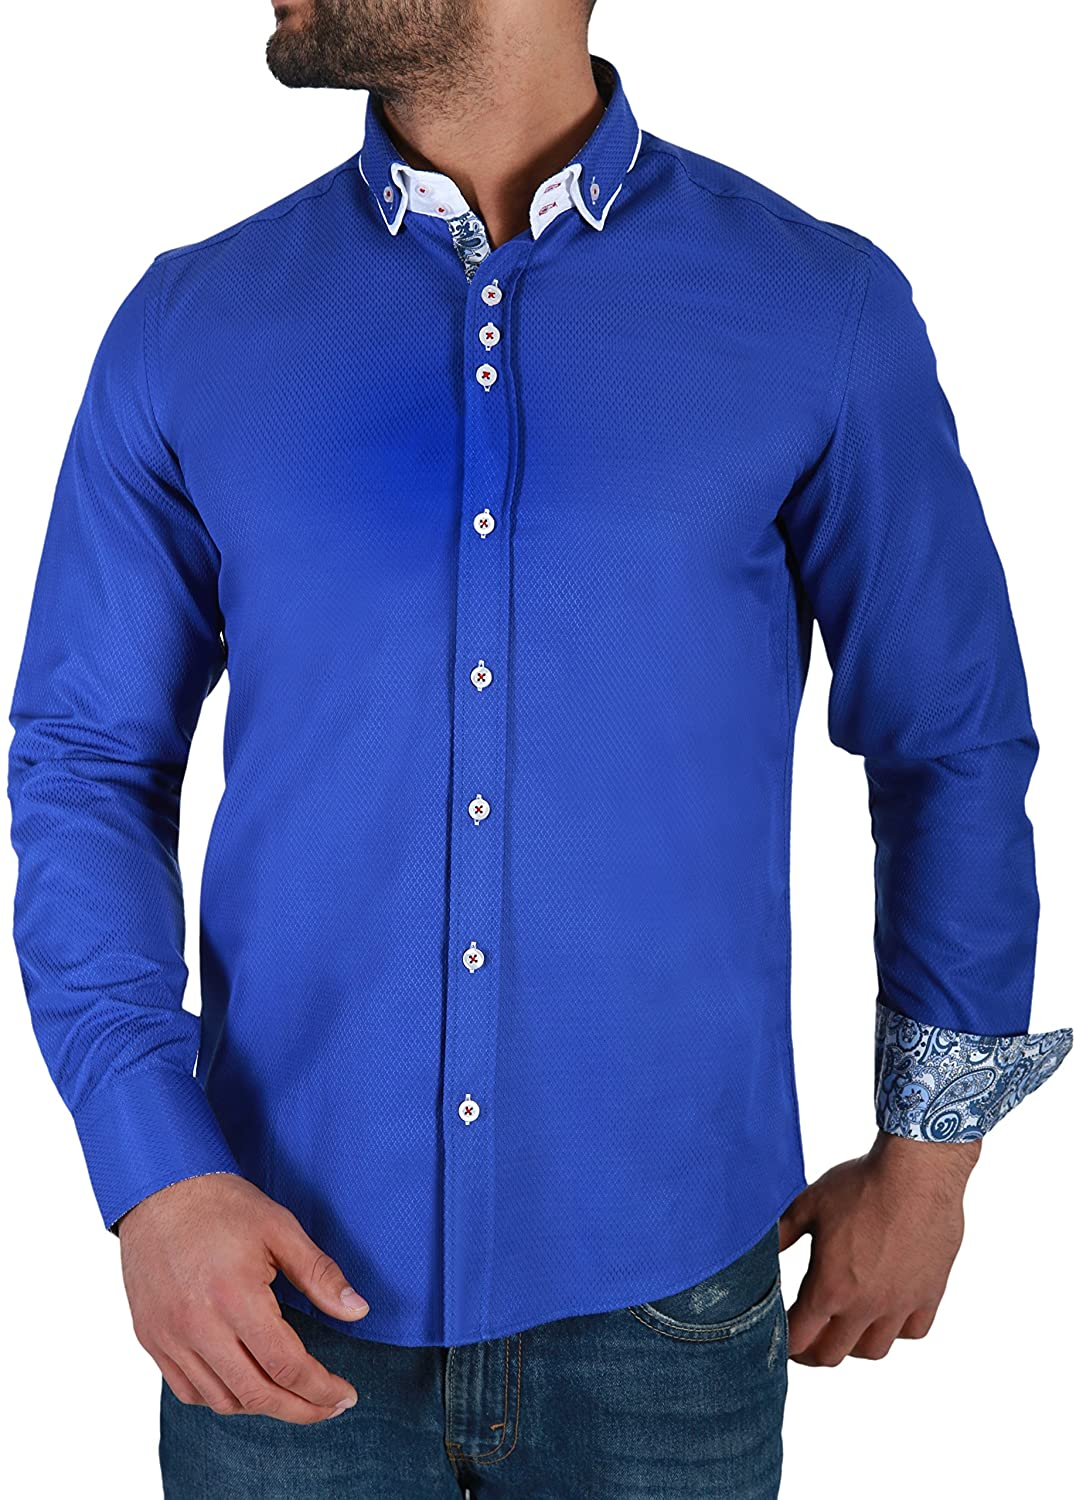 Karl's People - Camisa Casual - para Hombre